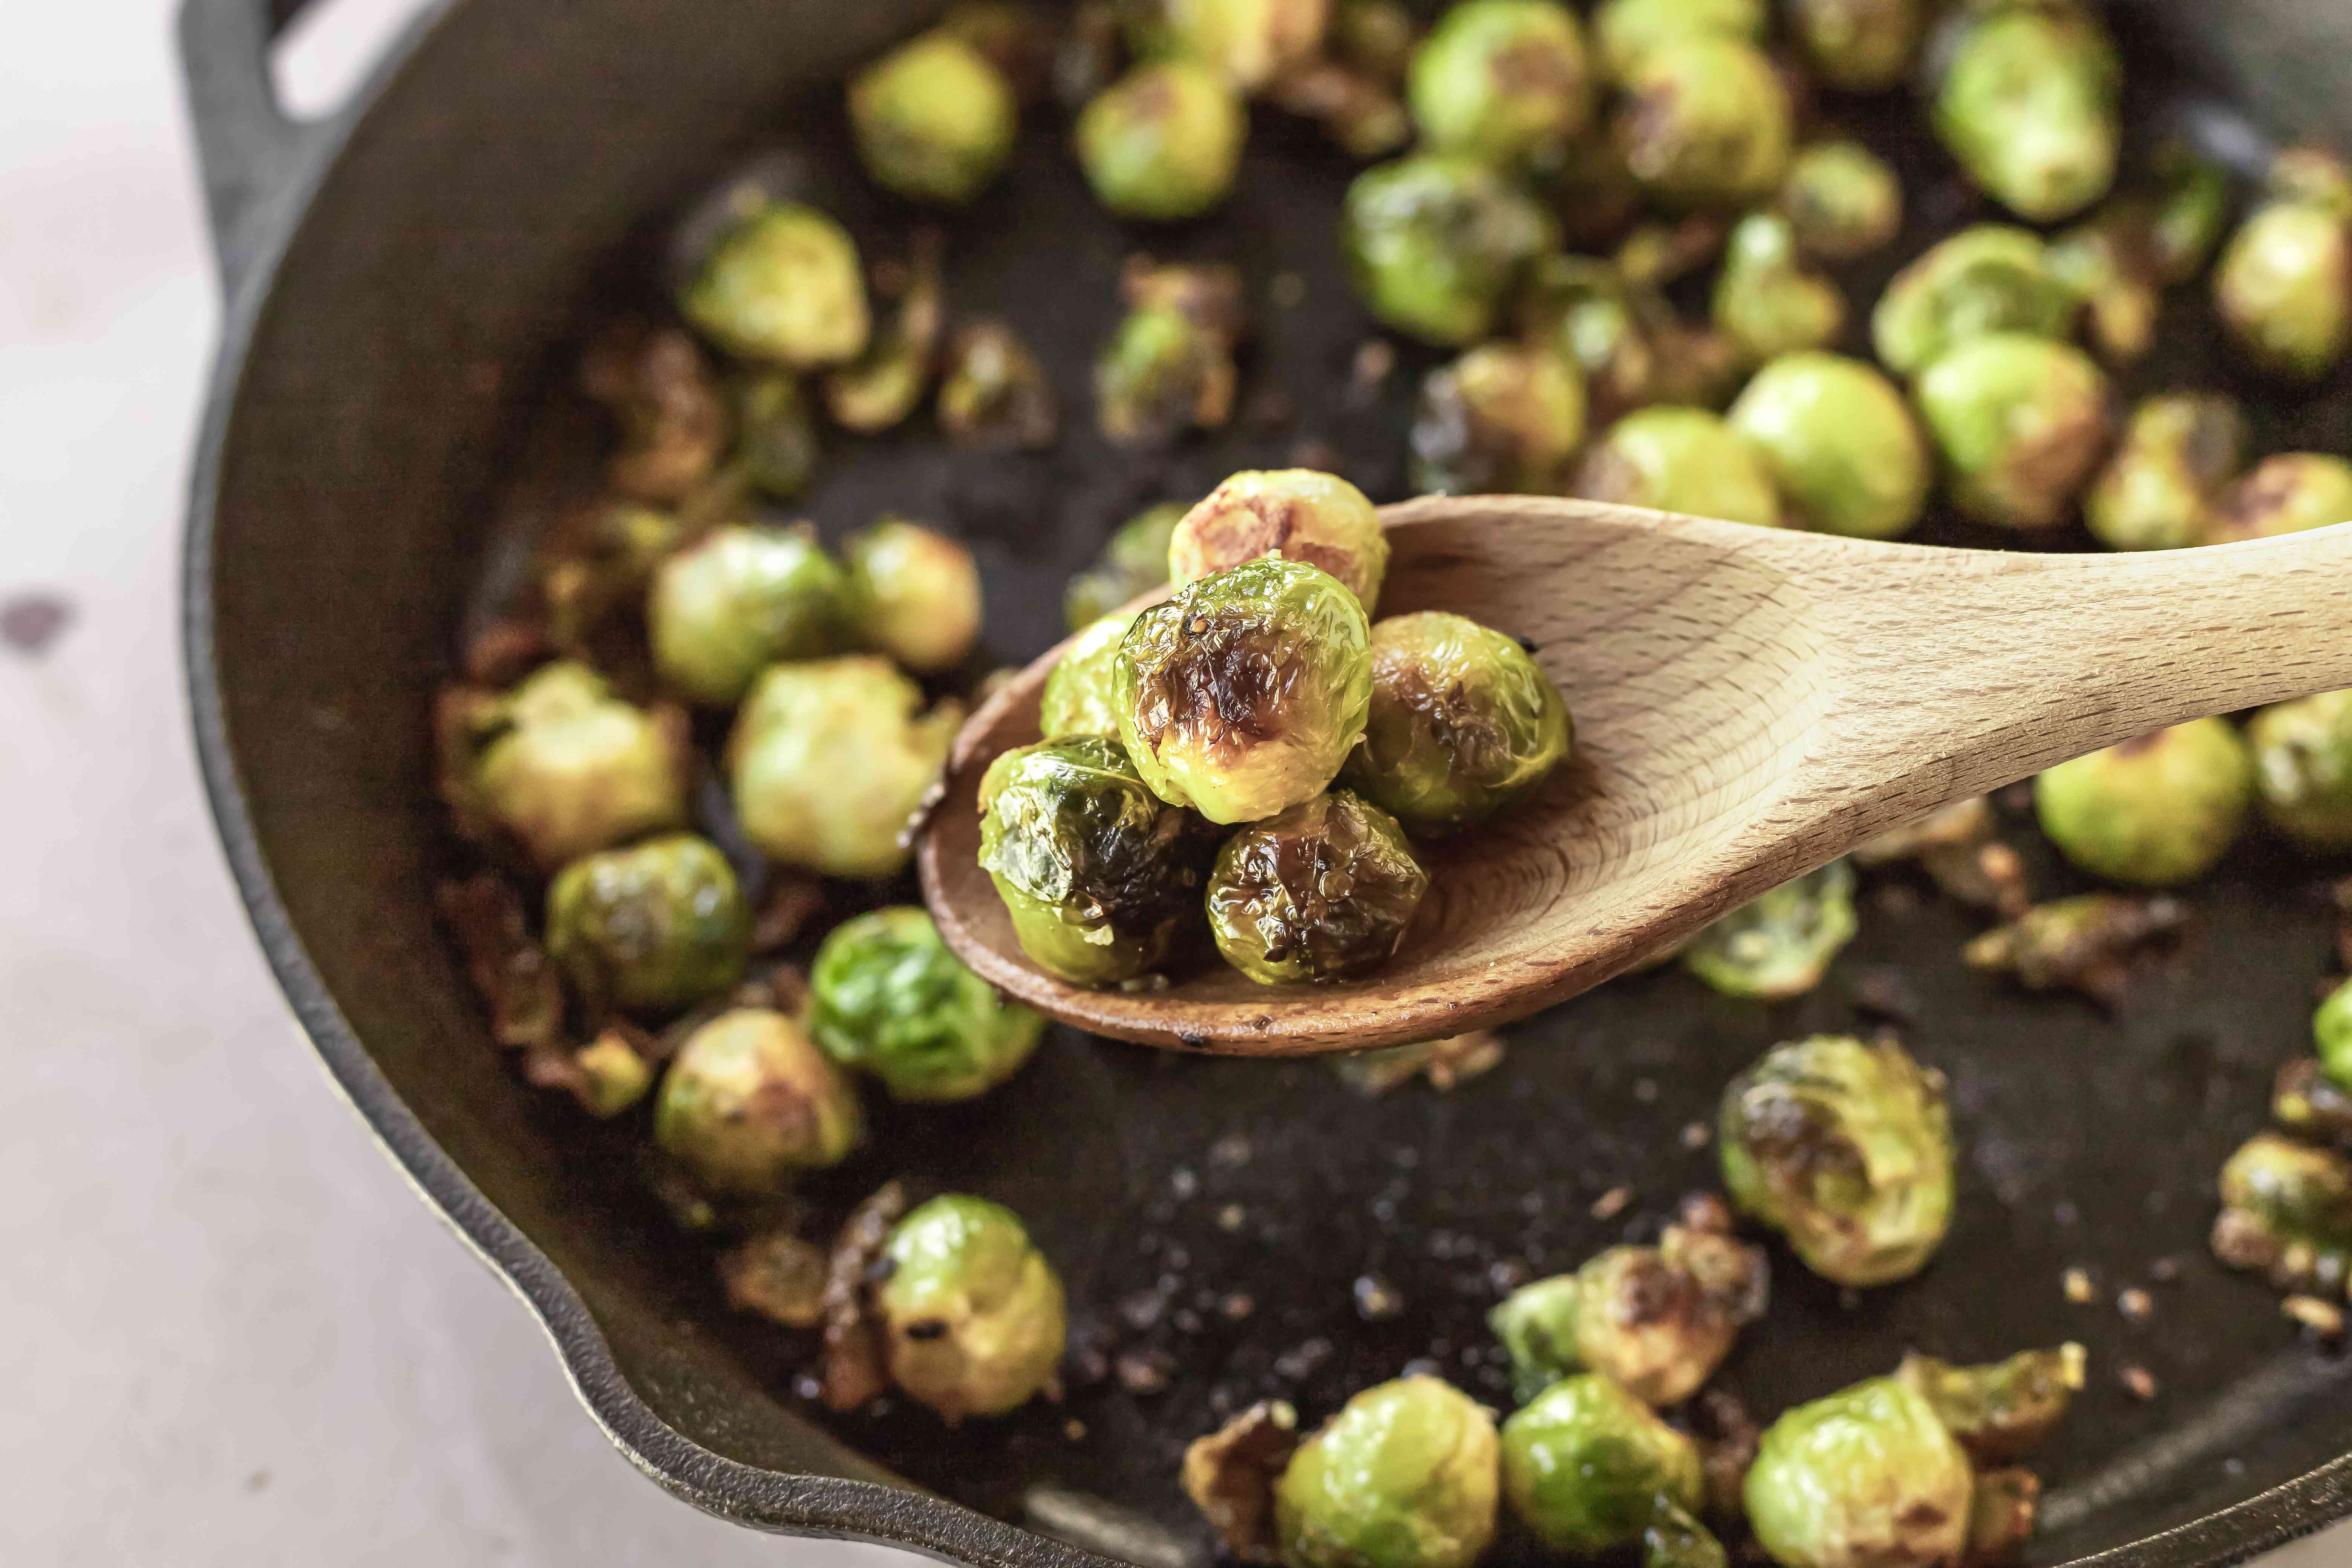 A wooden spoon scooping up roasted brussel sprouts in a cast iron pan.